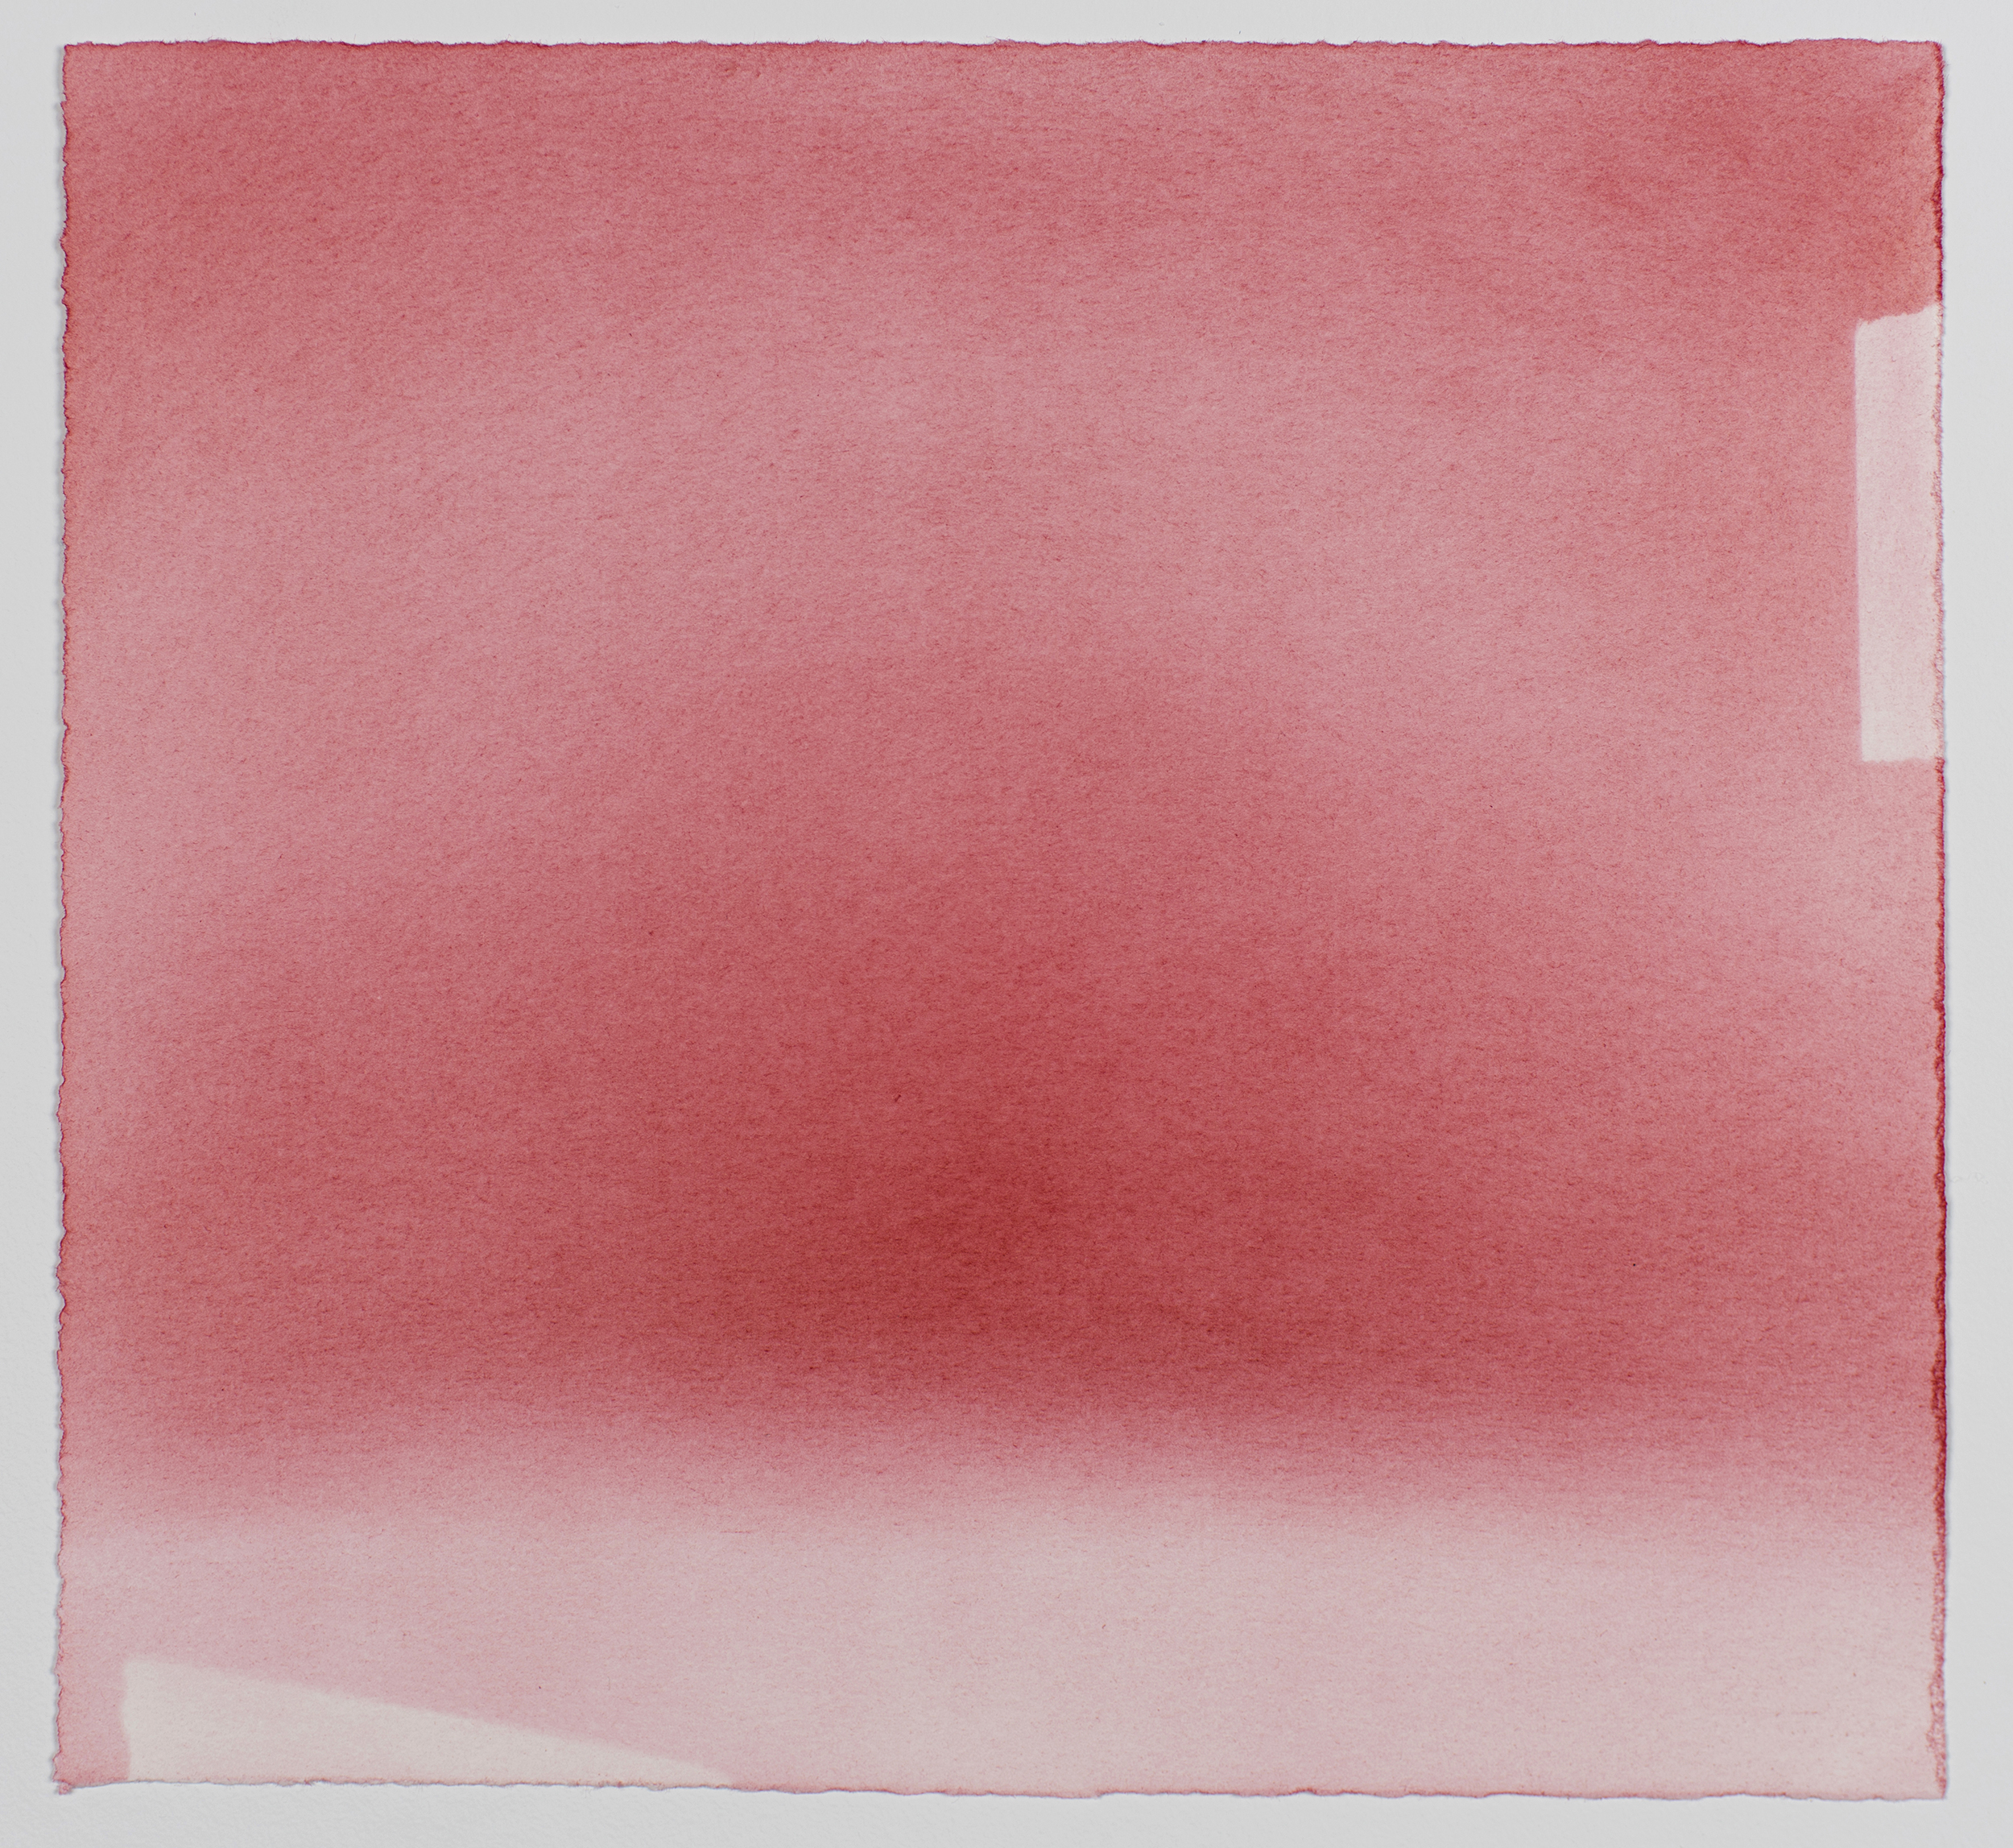 "Andréanne Godin,  Untitled IX  (from the series  The Paths of Resistance ), 2017, dry pigments (rouge pyrrole) on Arches paper, 8"" x 8.5"" (20 x 21.5 cm)"